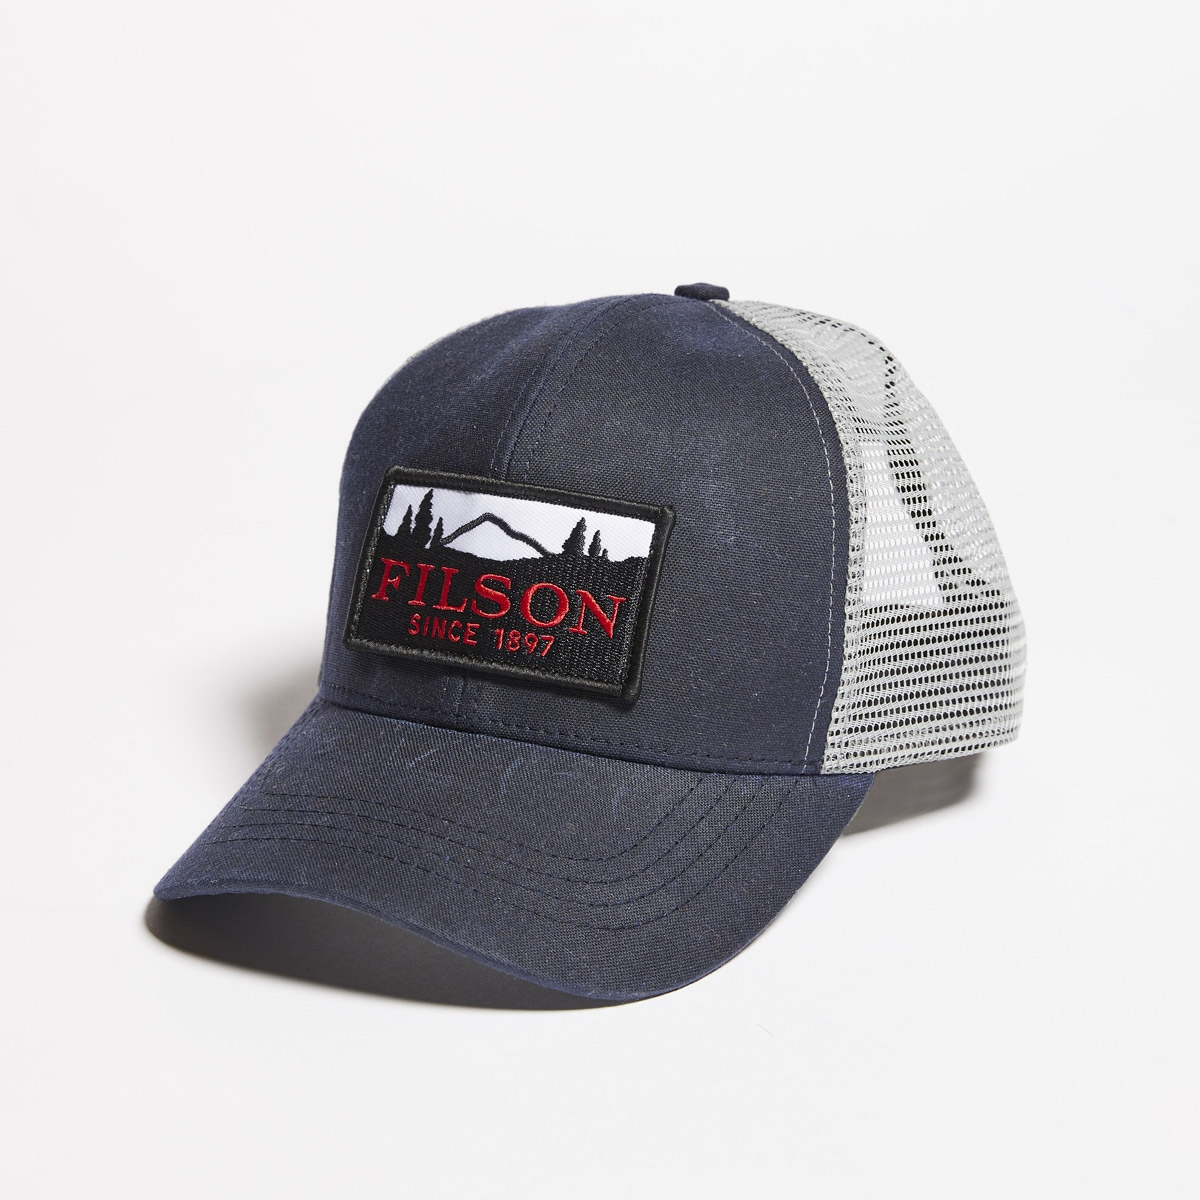 Filson Mesh Logger Cap 20157135-Navy, durable cap with breathable sun protection